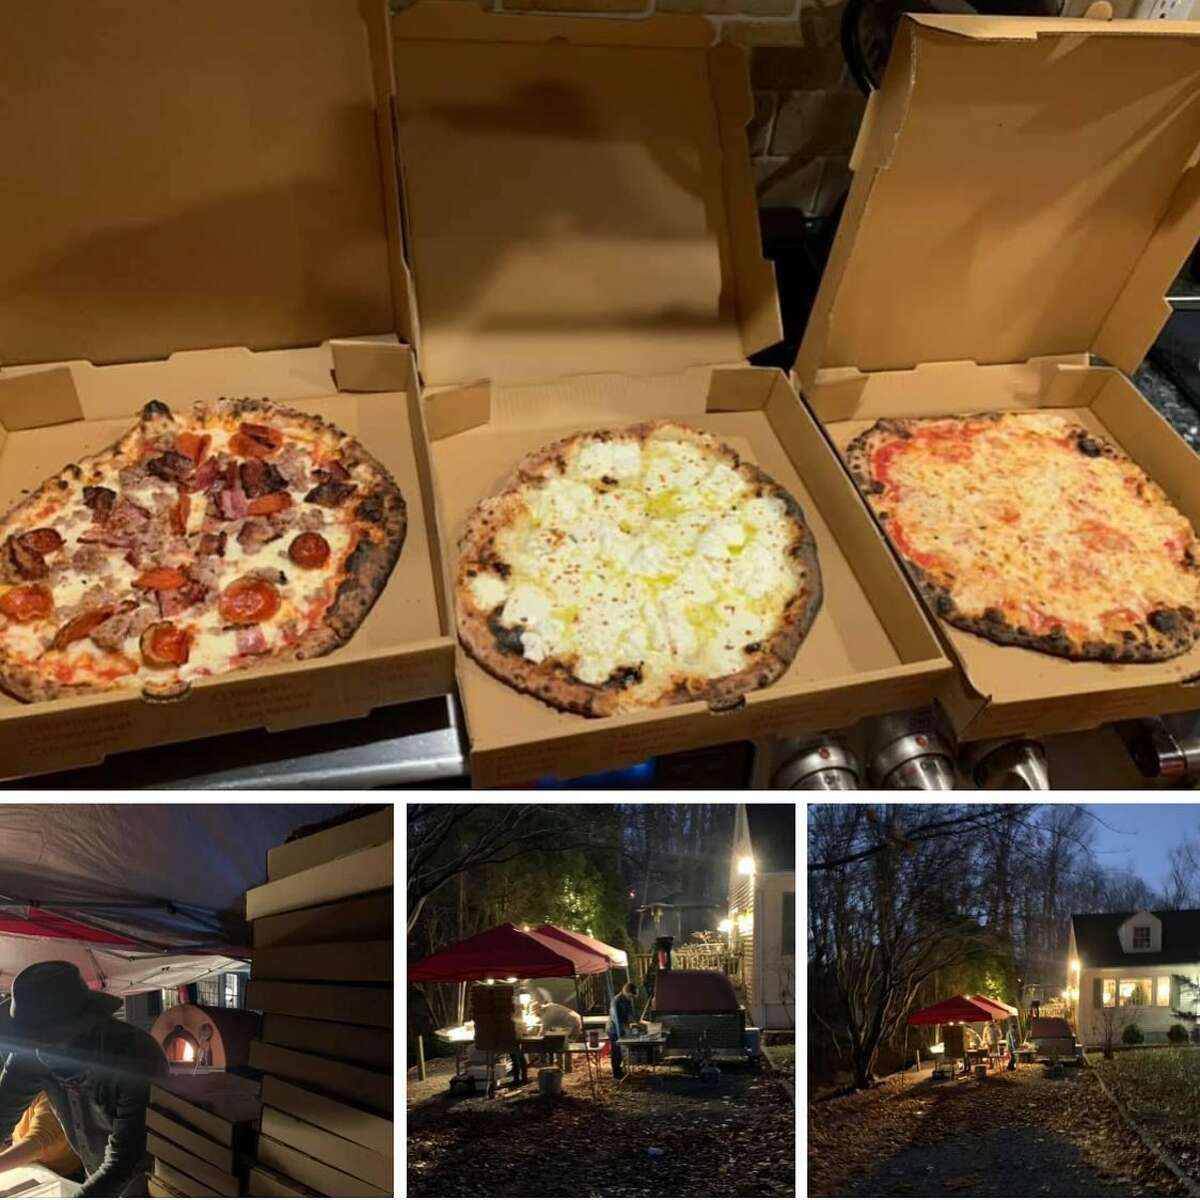 """Bailey's Backyard in Ridgefield has started a pop-up pizza business. Since September, pop-up made-to-order pizza delivery is now on the Backyard menu. Owner Sal Bagliavio and his longtime friend Frank Candullo - chief pizza maker - have created a mobile pizza-making station that travels around the area and cooks pies on site.  The two have known each other since their sons were in nursery school together and used to joke about opening up a pizza place together. """"Frank would have the school end-of-the-year party at his house where he built his own pizza oven years ago, and it was the best pizza I ever had,"""" Bagliavio said. """"We would joke around and say we should open up a pizza place someday."""""""